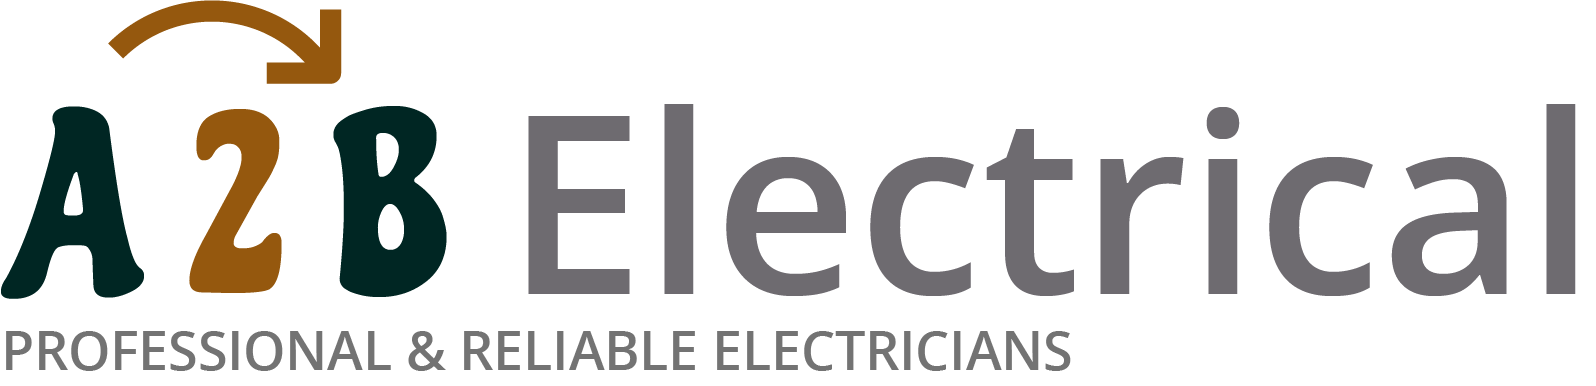 If you have electrical wiring problems in West Wickham, we can provide an electrician to have a look for you.